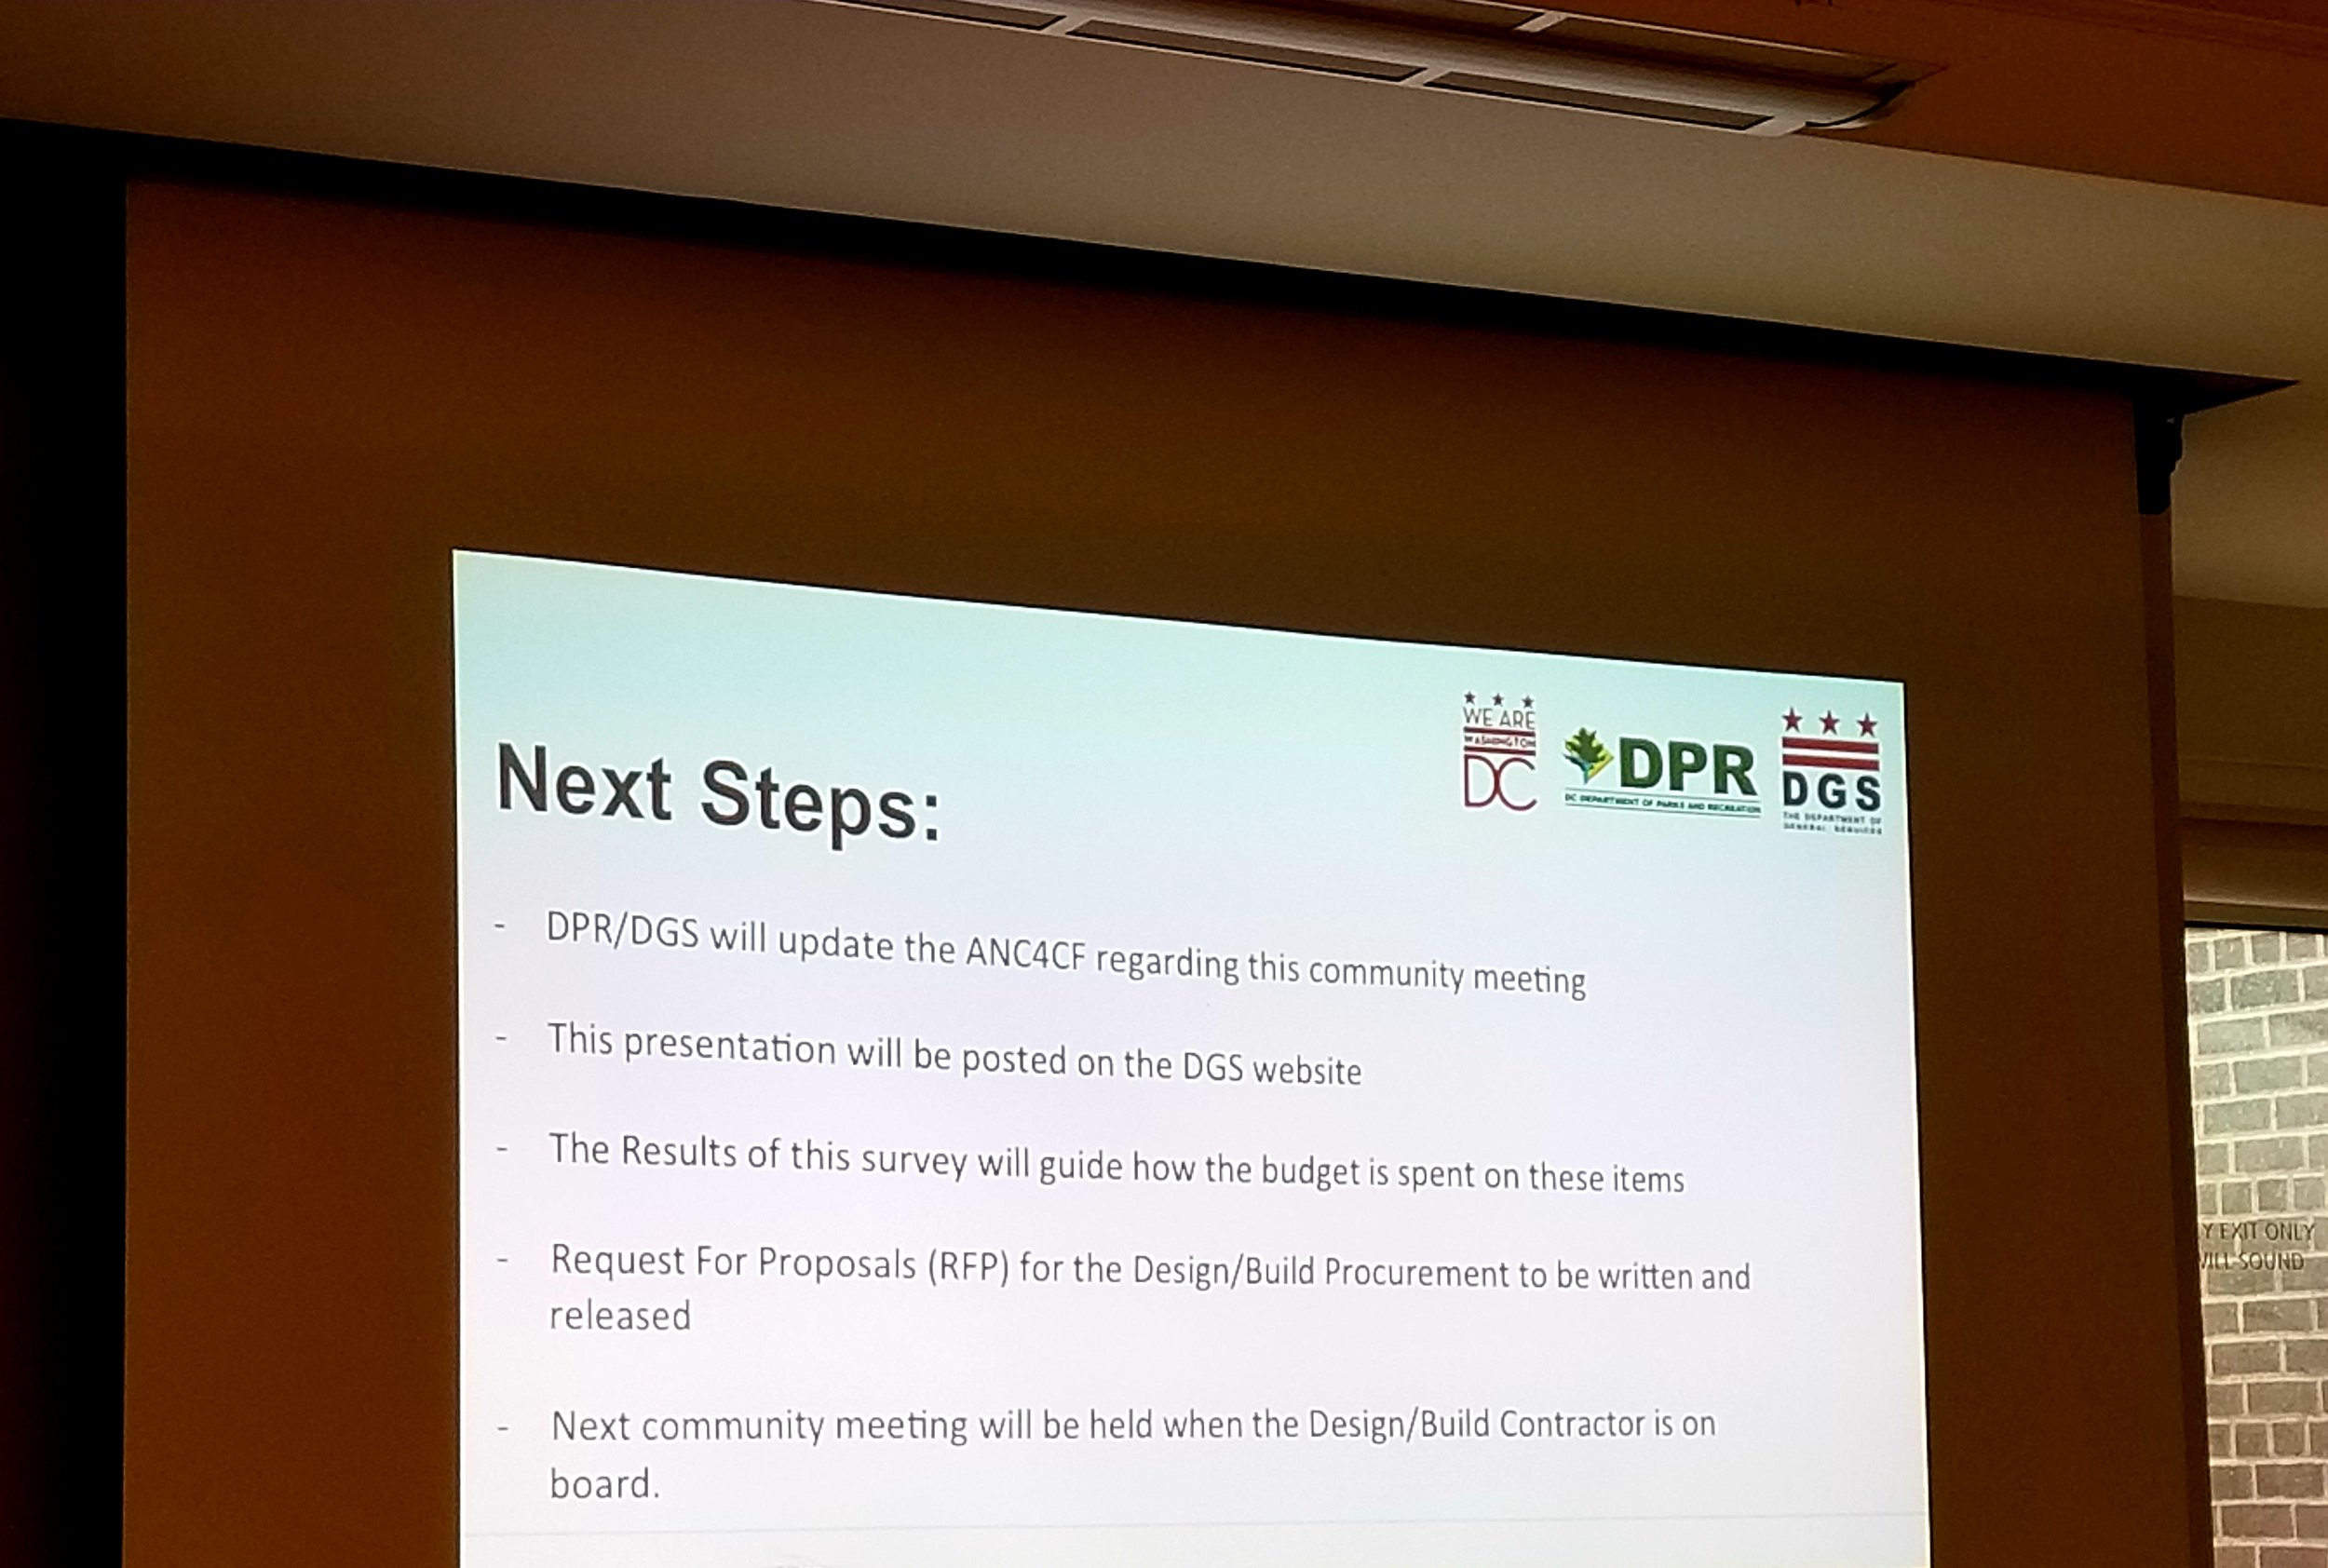 Proposed next steps in the Petworth Park renovation.